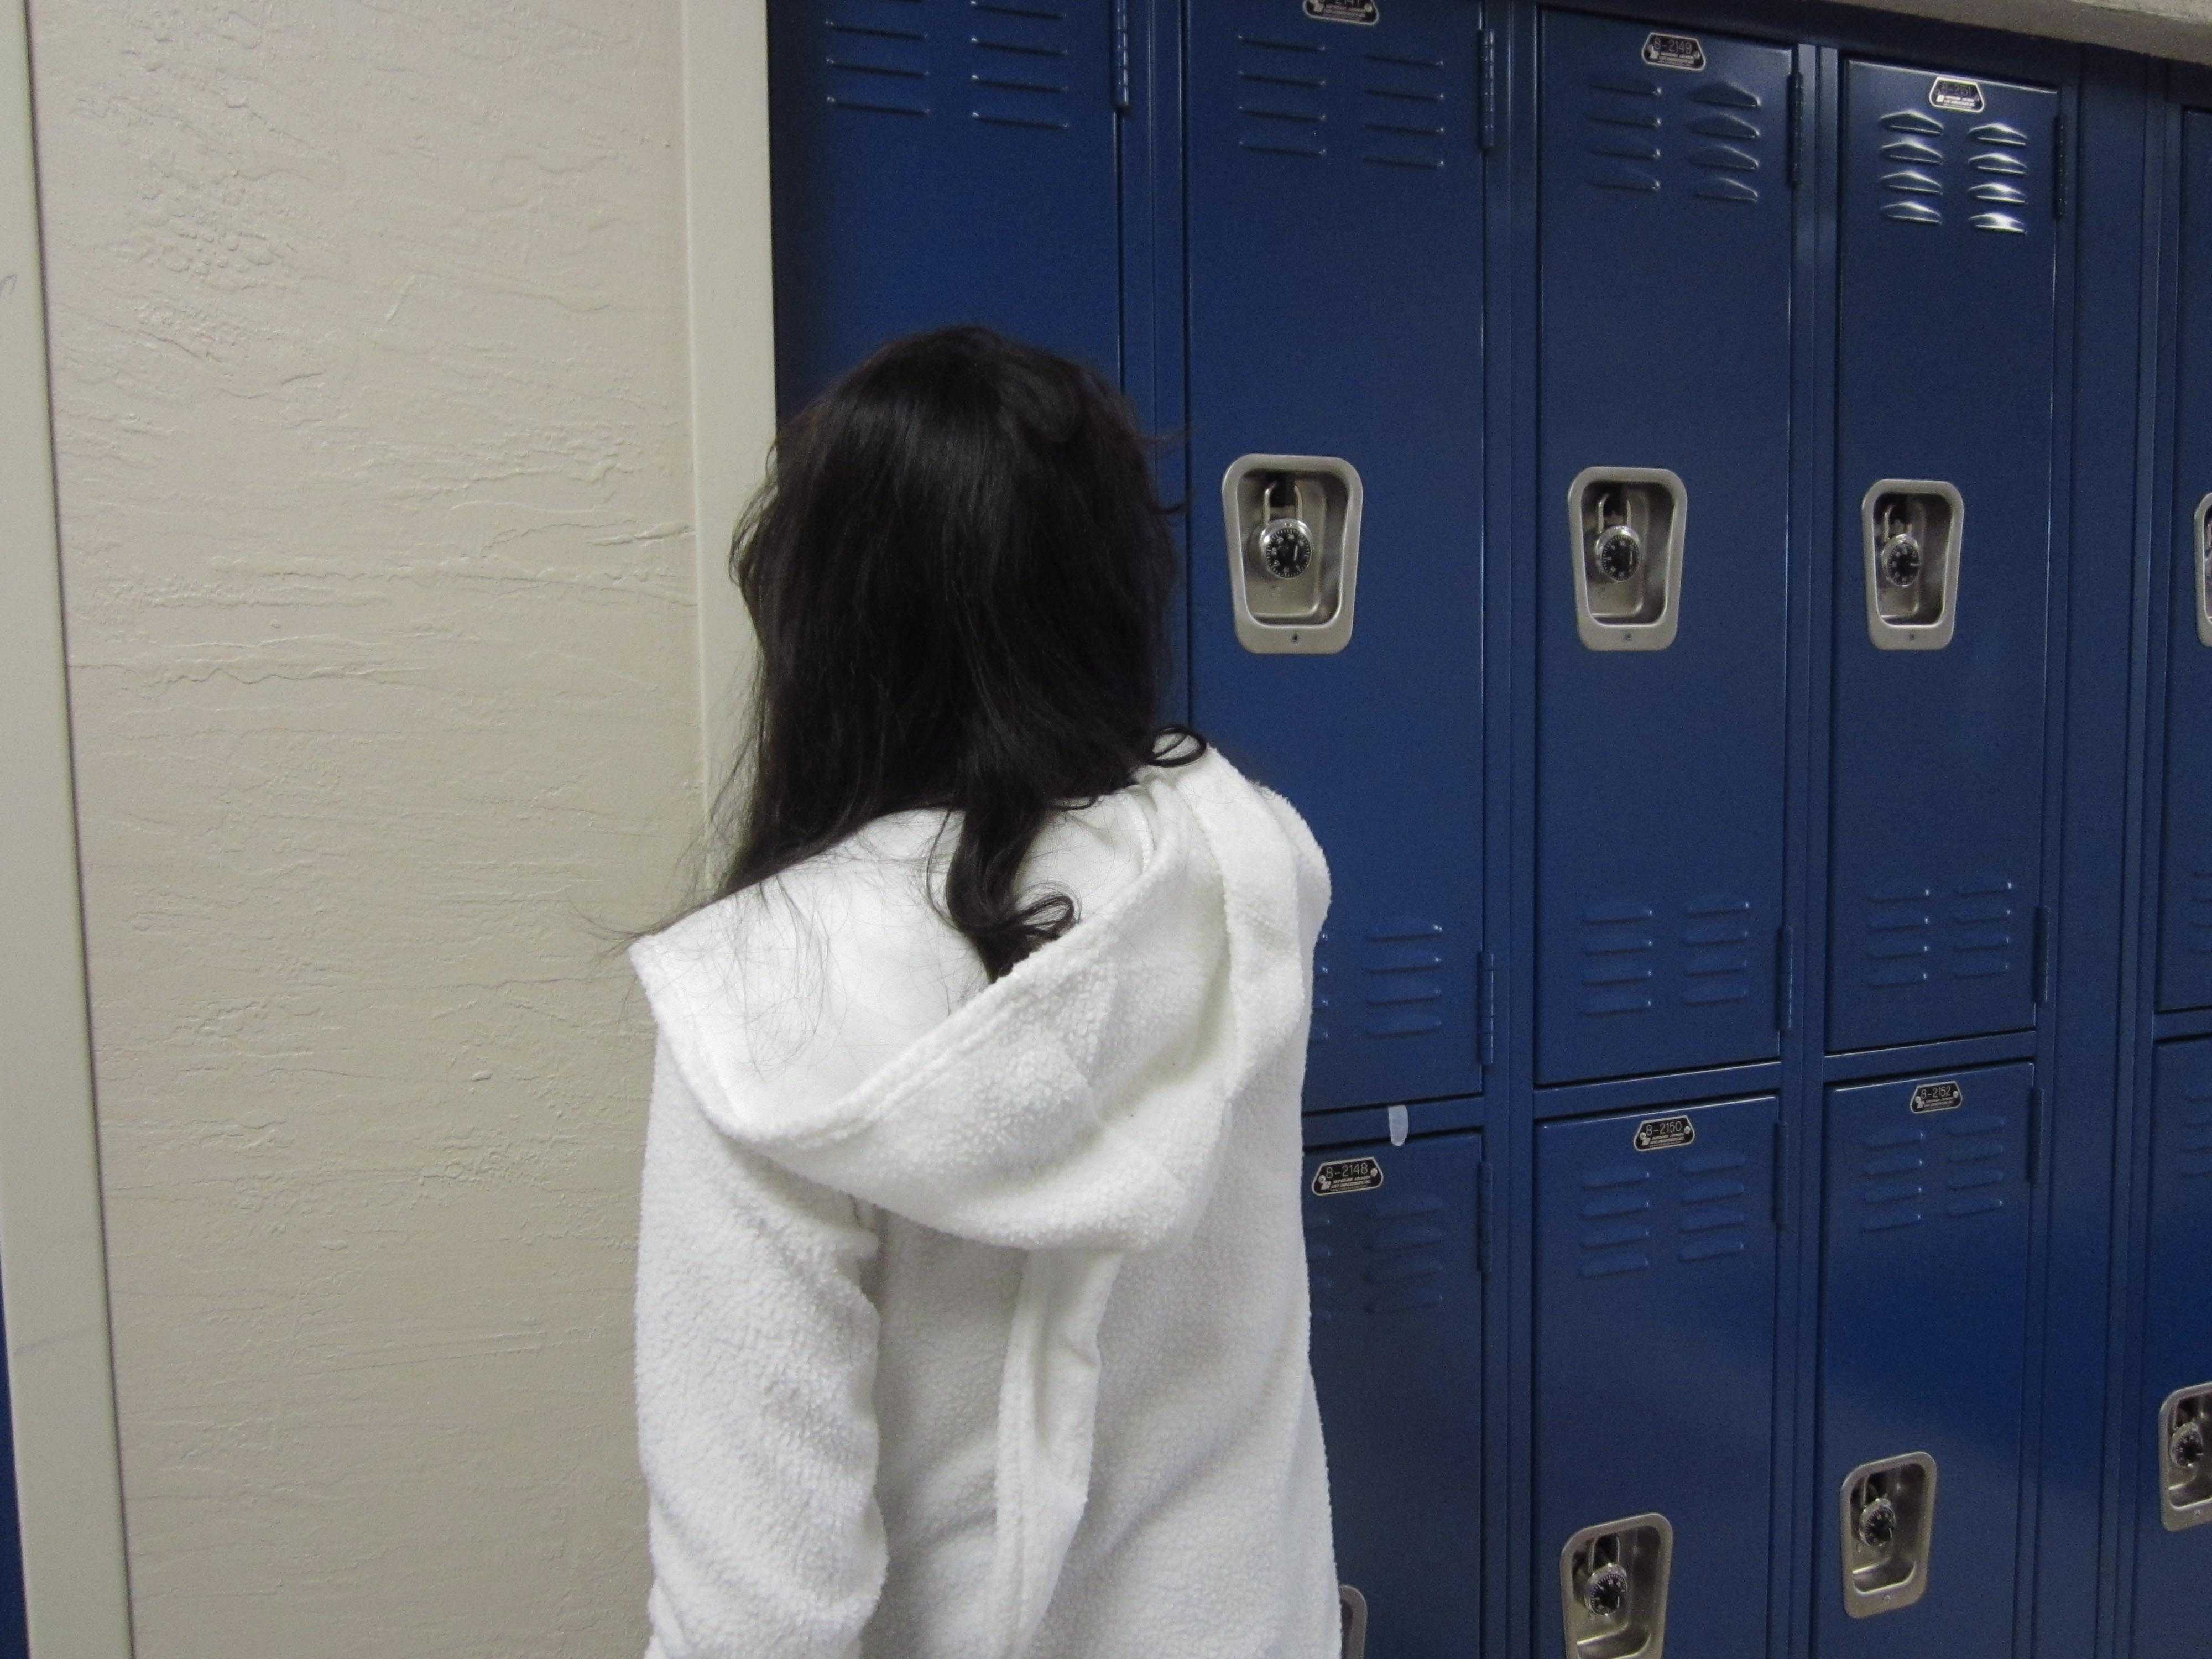 A student rushes to open her locker before the first bell rings.